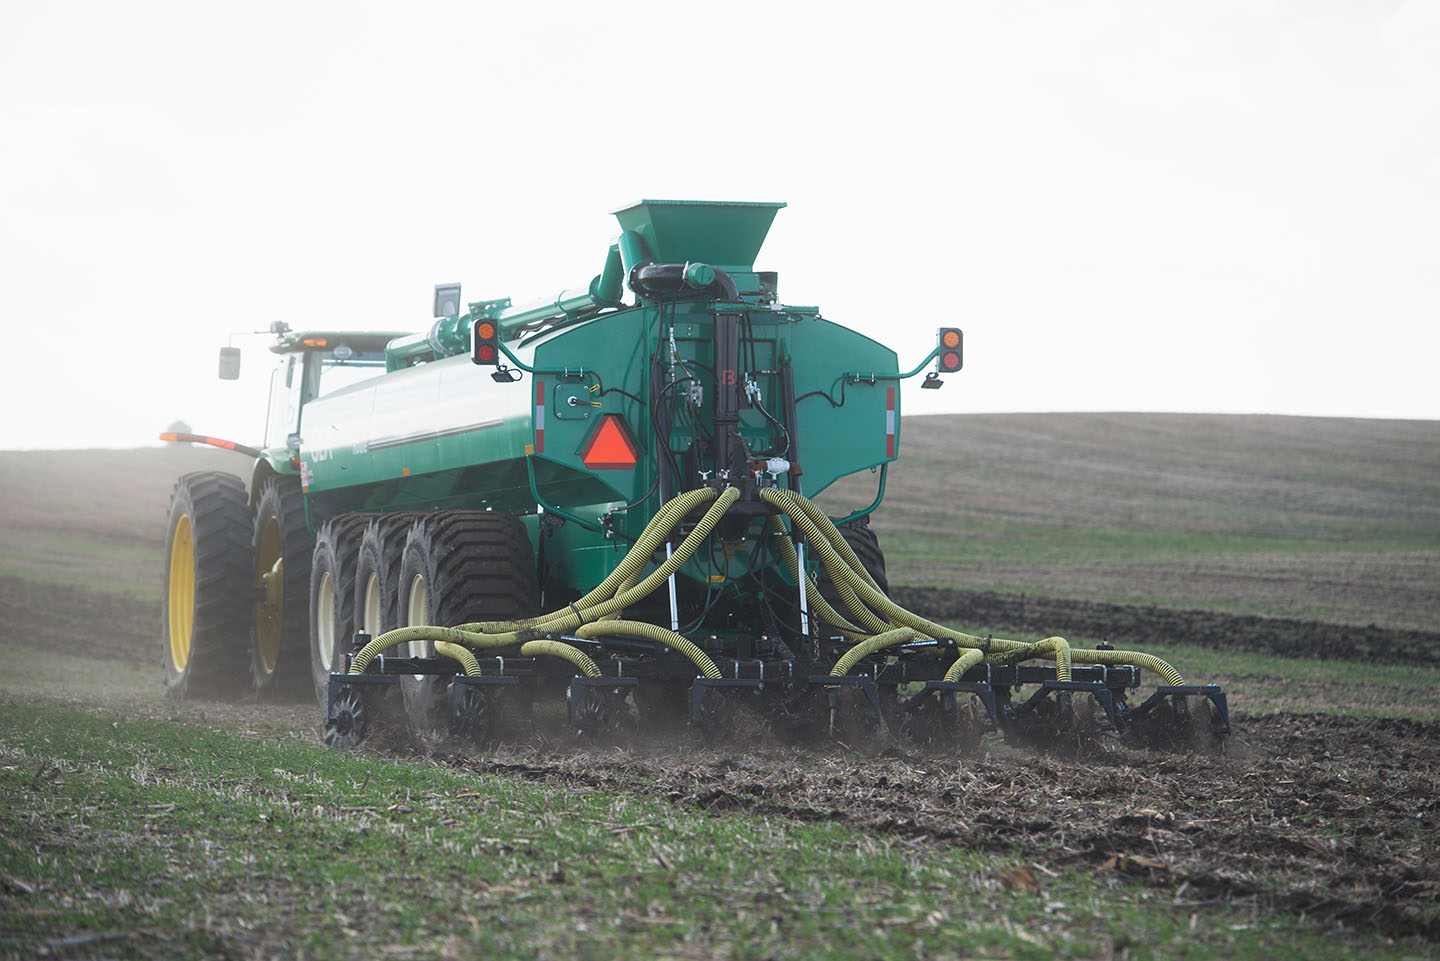 A farmer operates a manure spreader in one of their fie